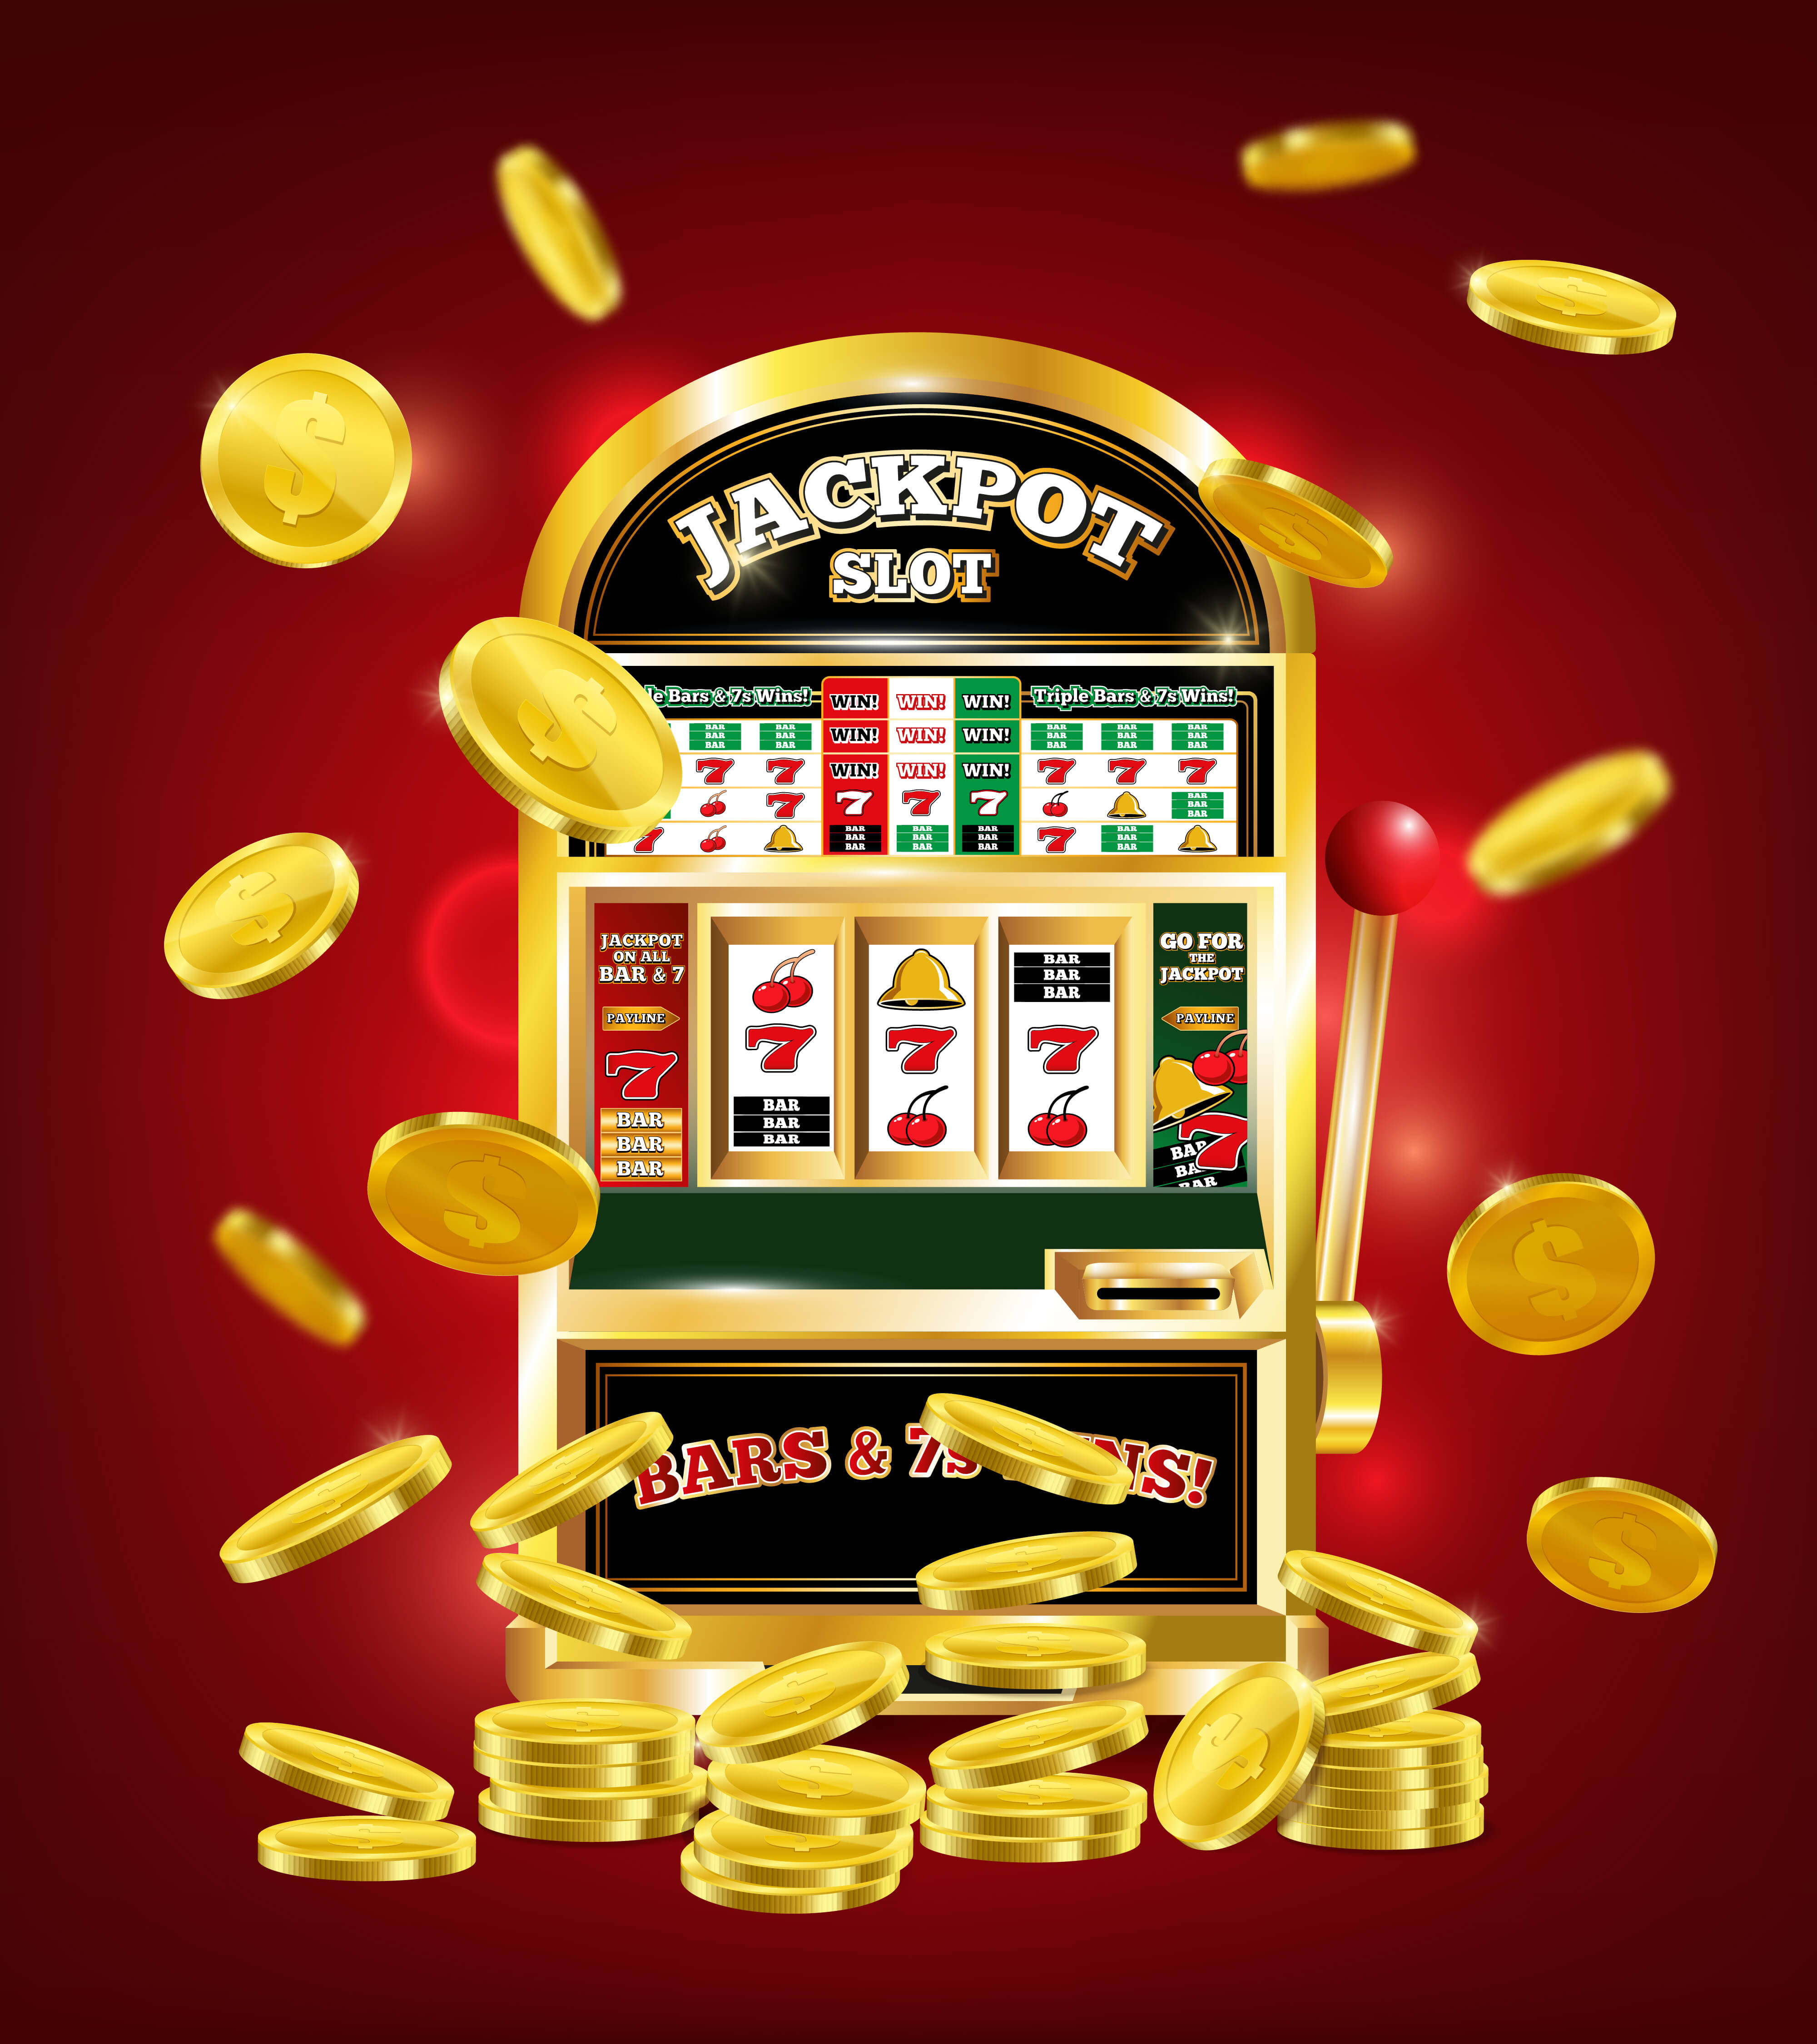 How can get free spins from online casino?